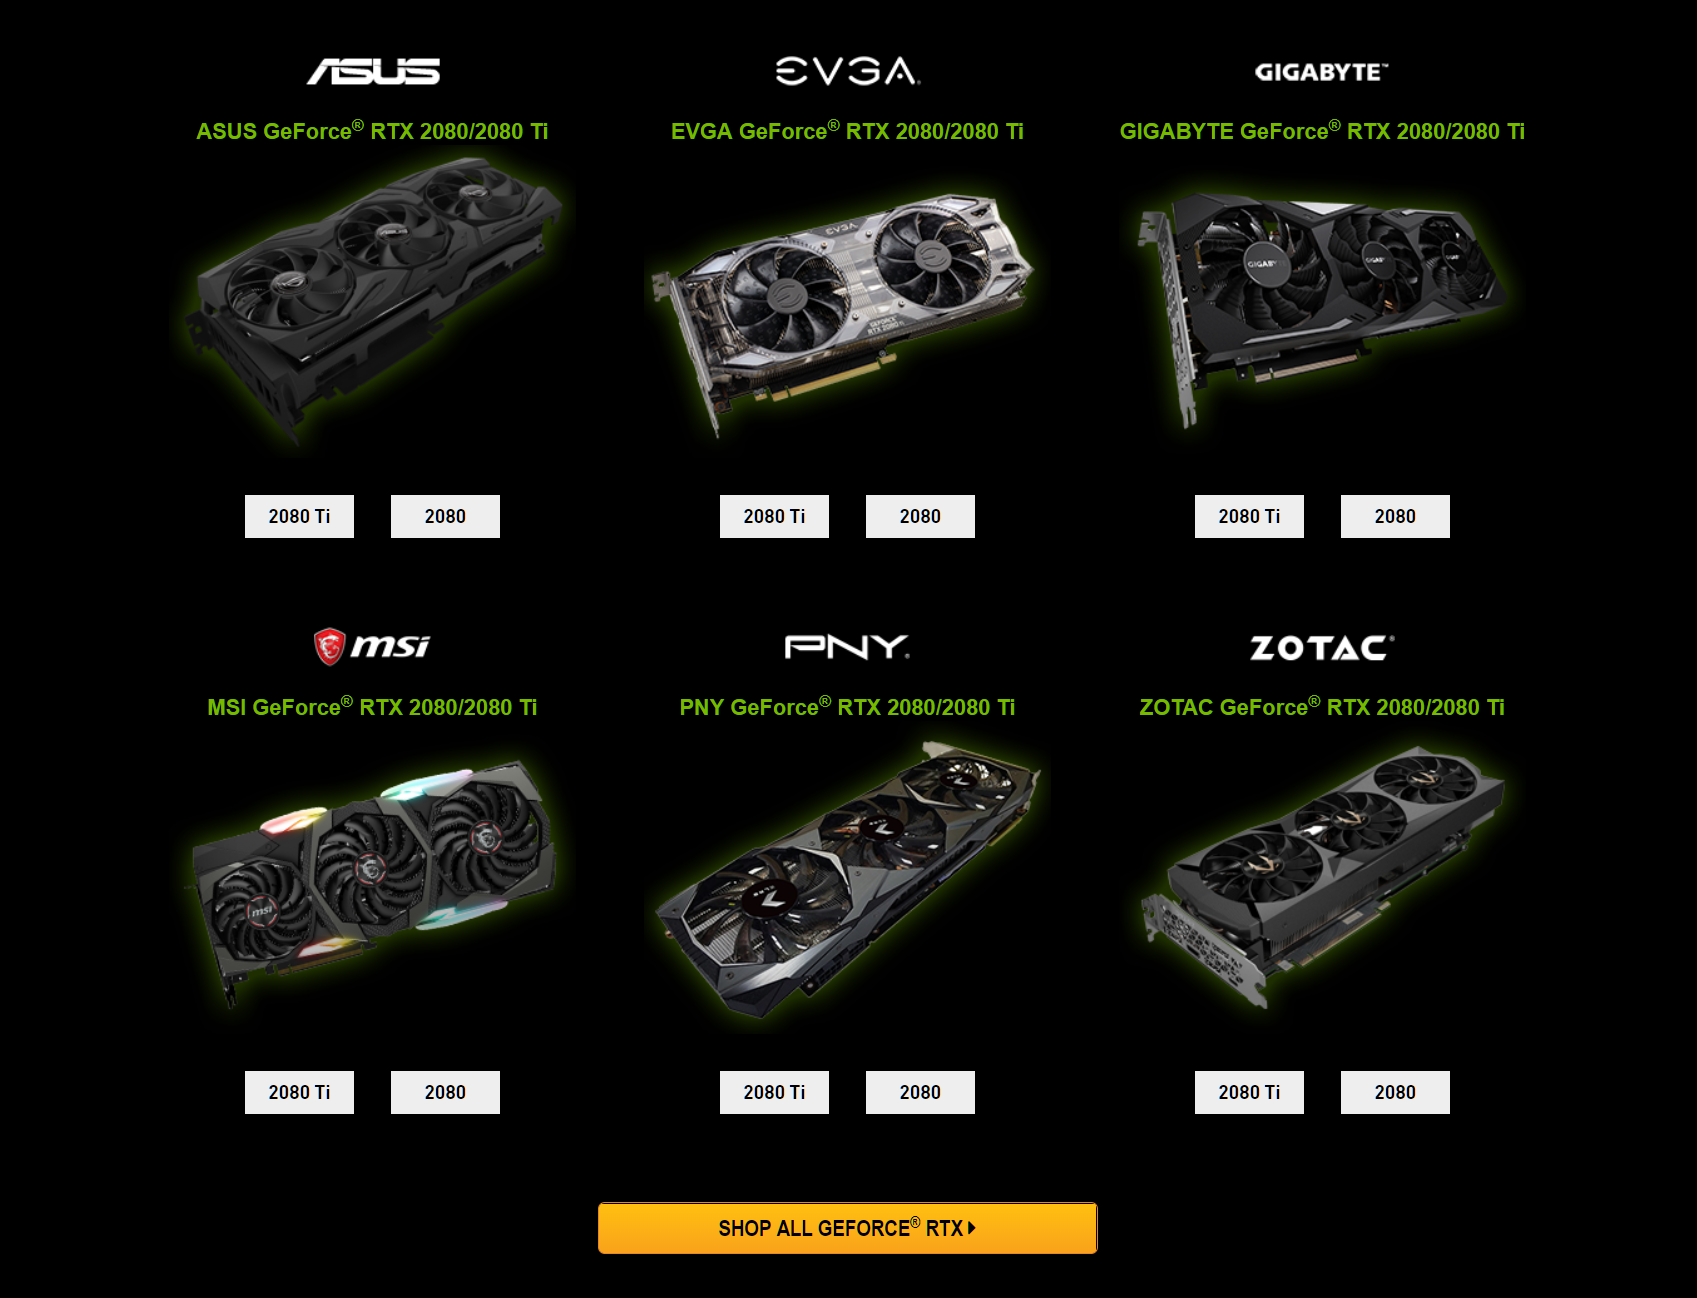 Performance and price NVIDIA GeForce RTX 2080 Ti appeared before the announcement